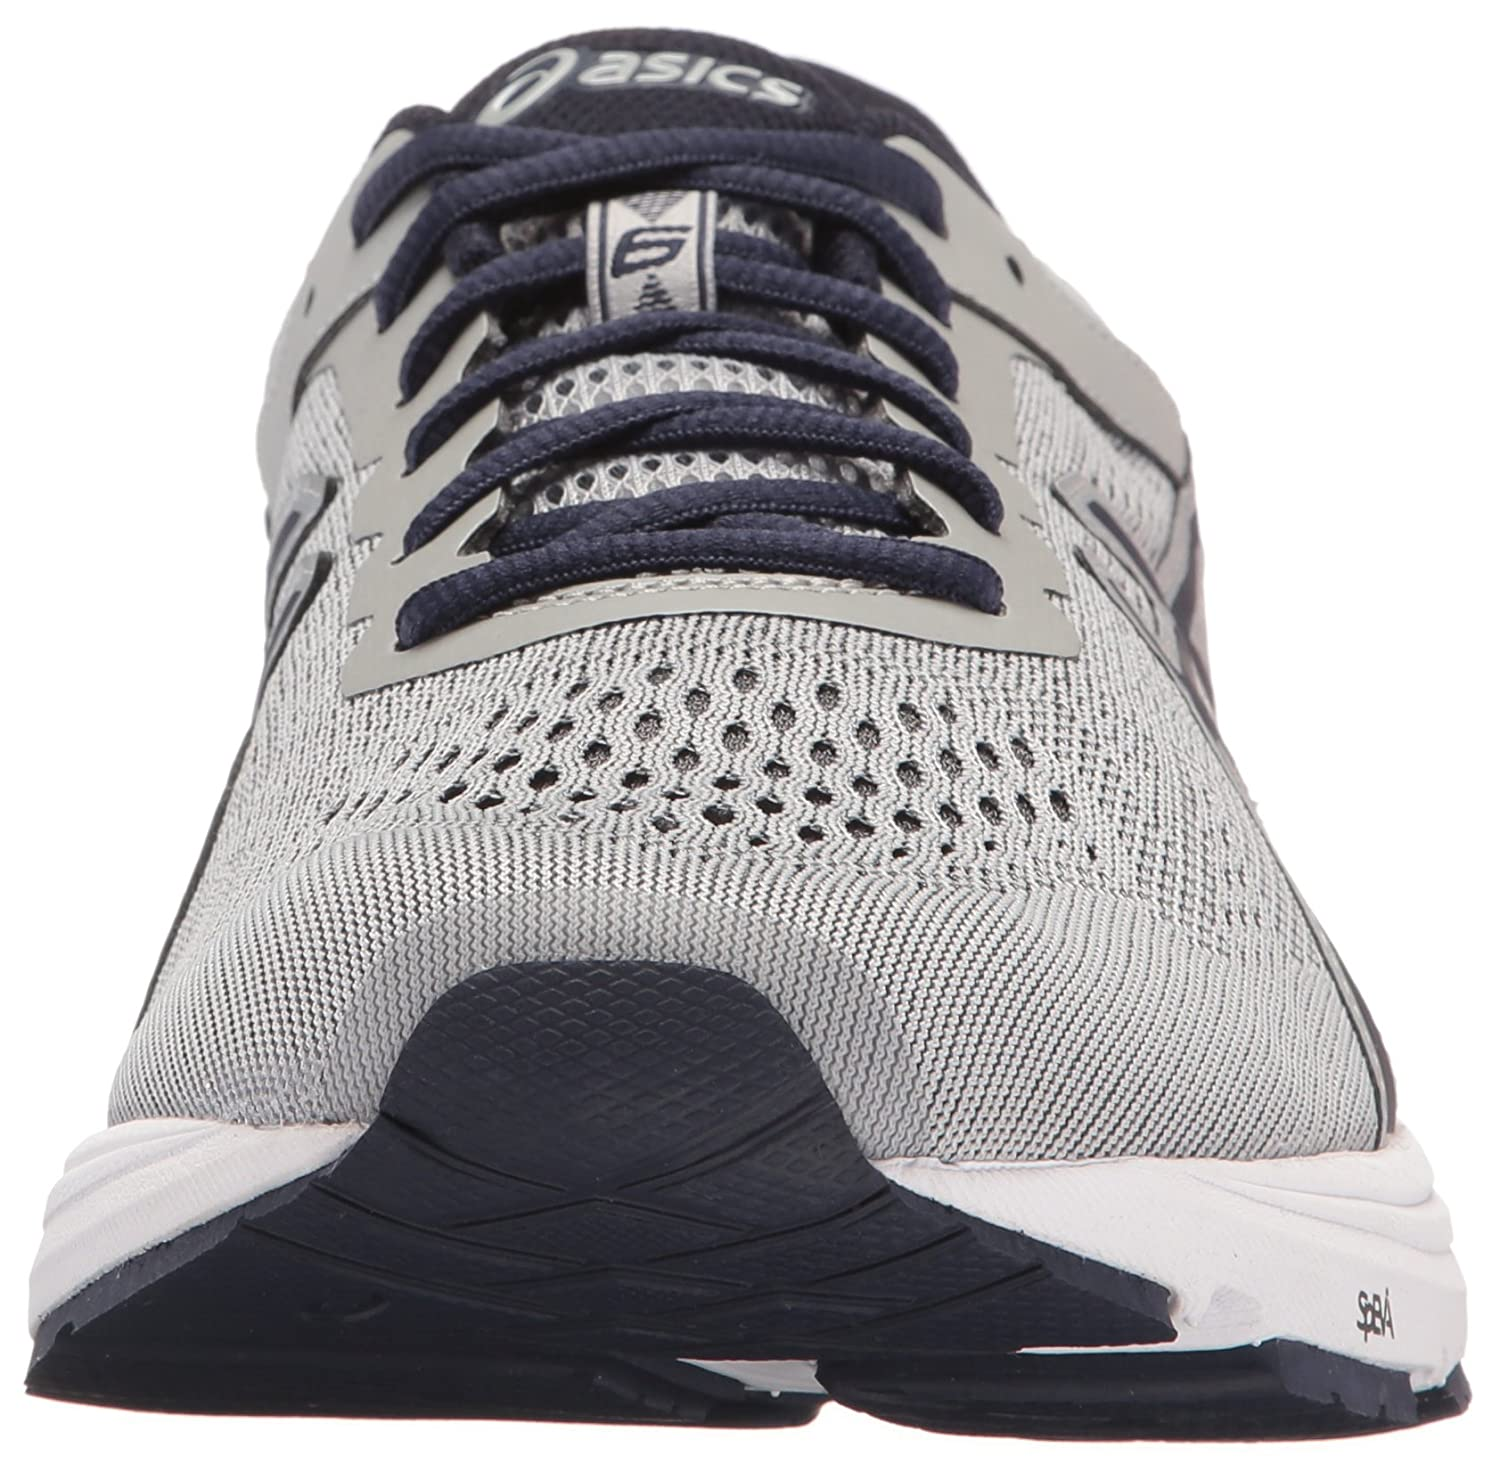 6 De As Asics Chaussures 1000 Course Hommes Gt T7a4n XOwfR